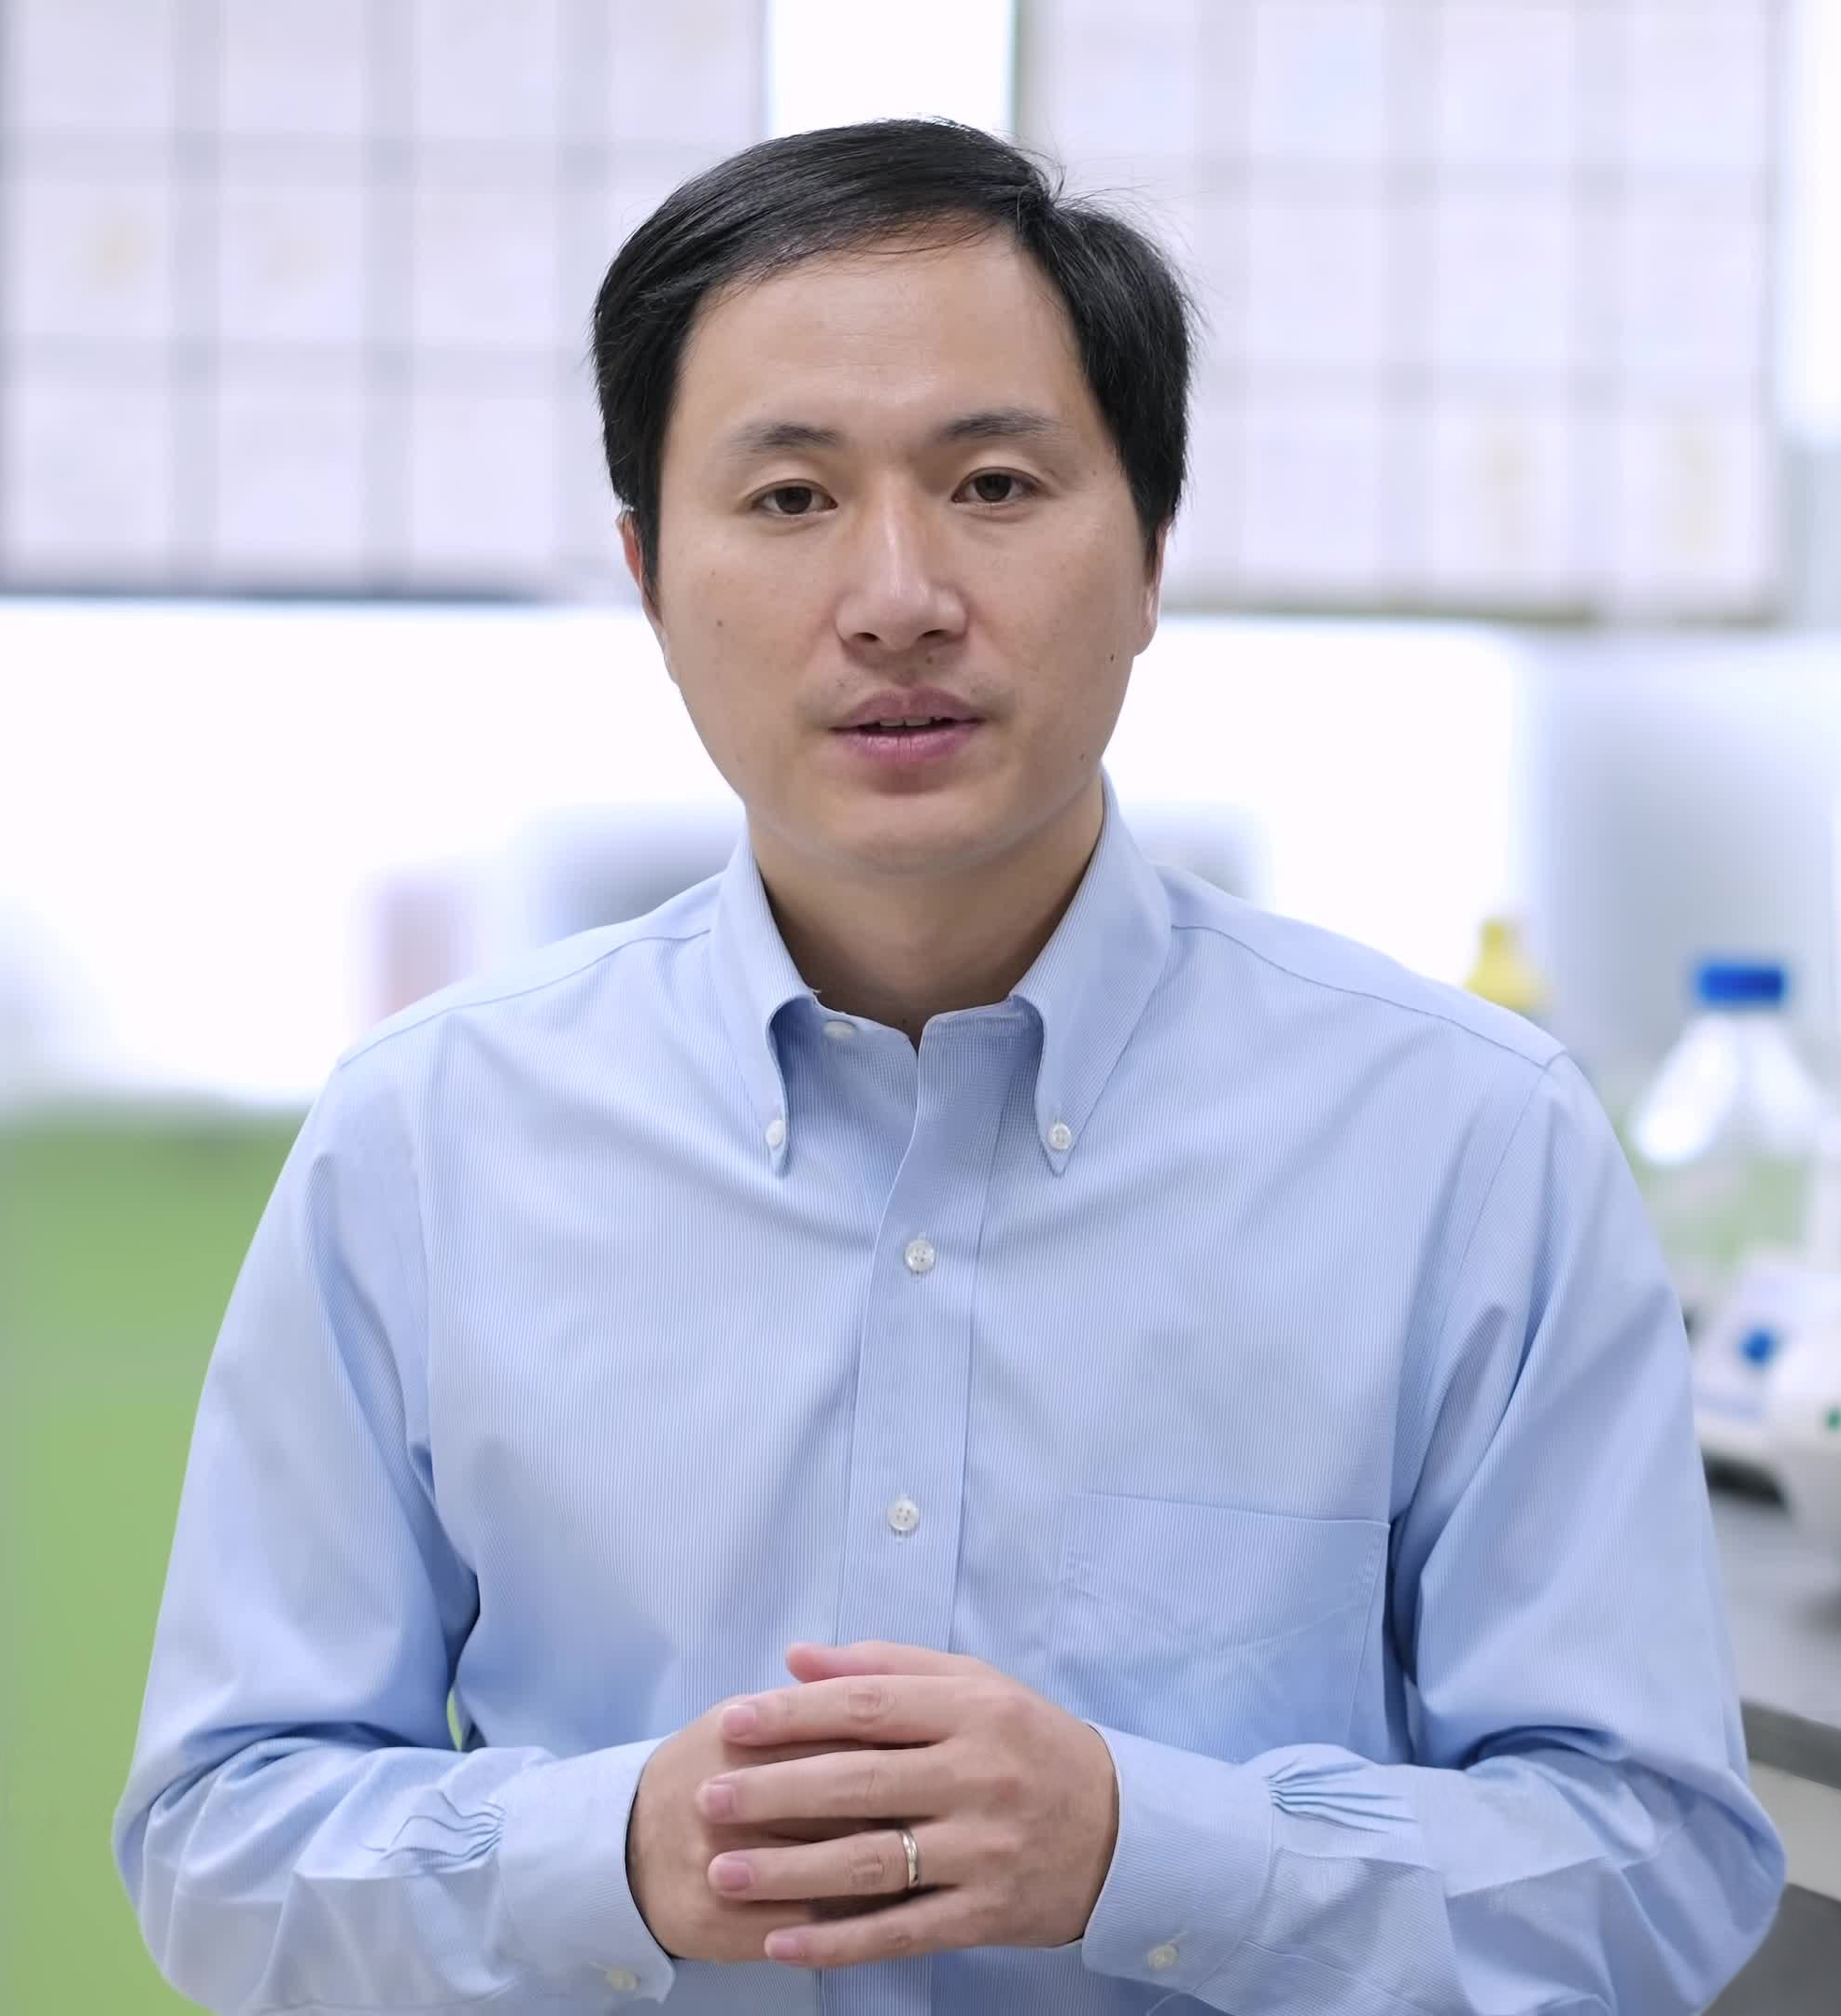 Photo of He Jiankui in a blue collard shirt who experimented to make CRISPR'd twins who were delivered last November.